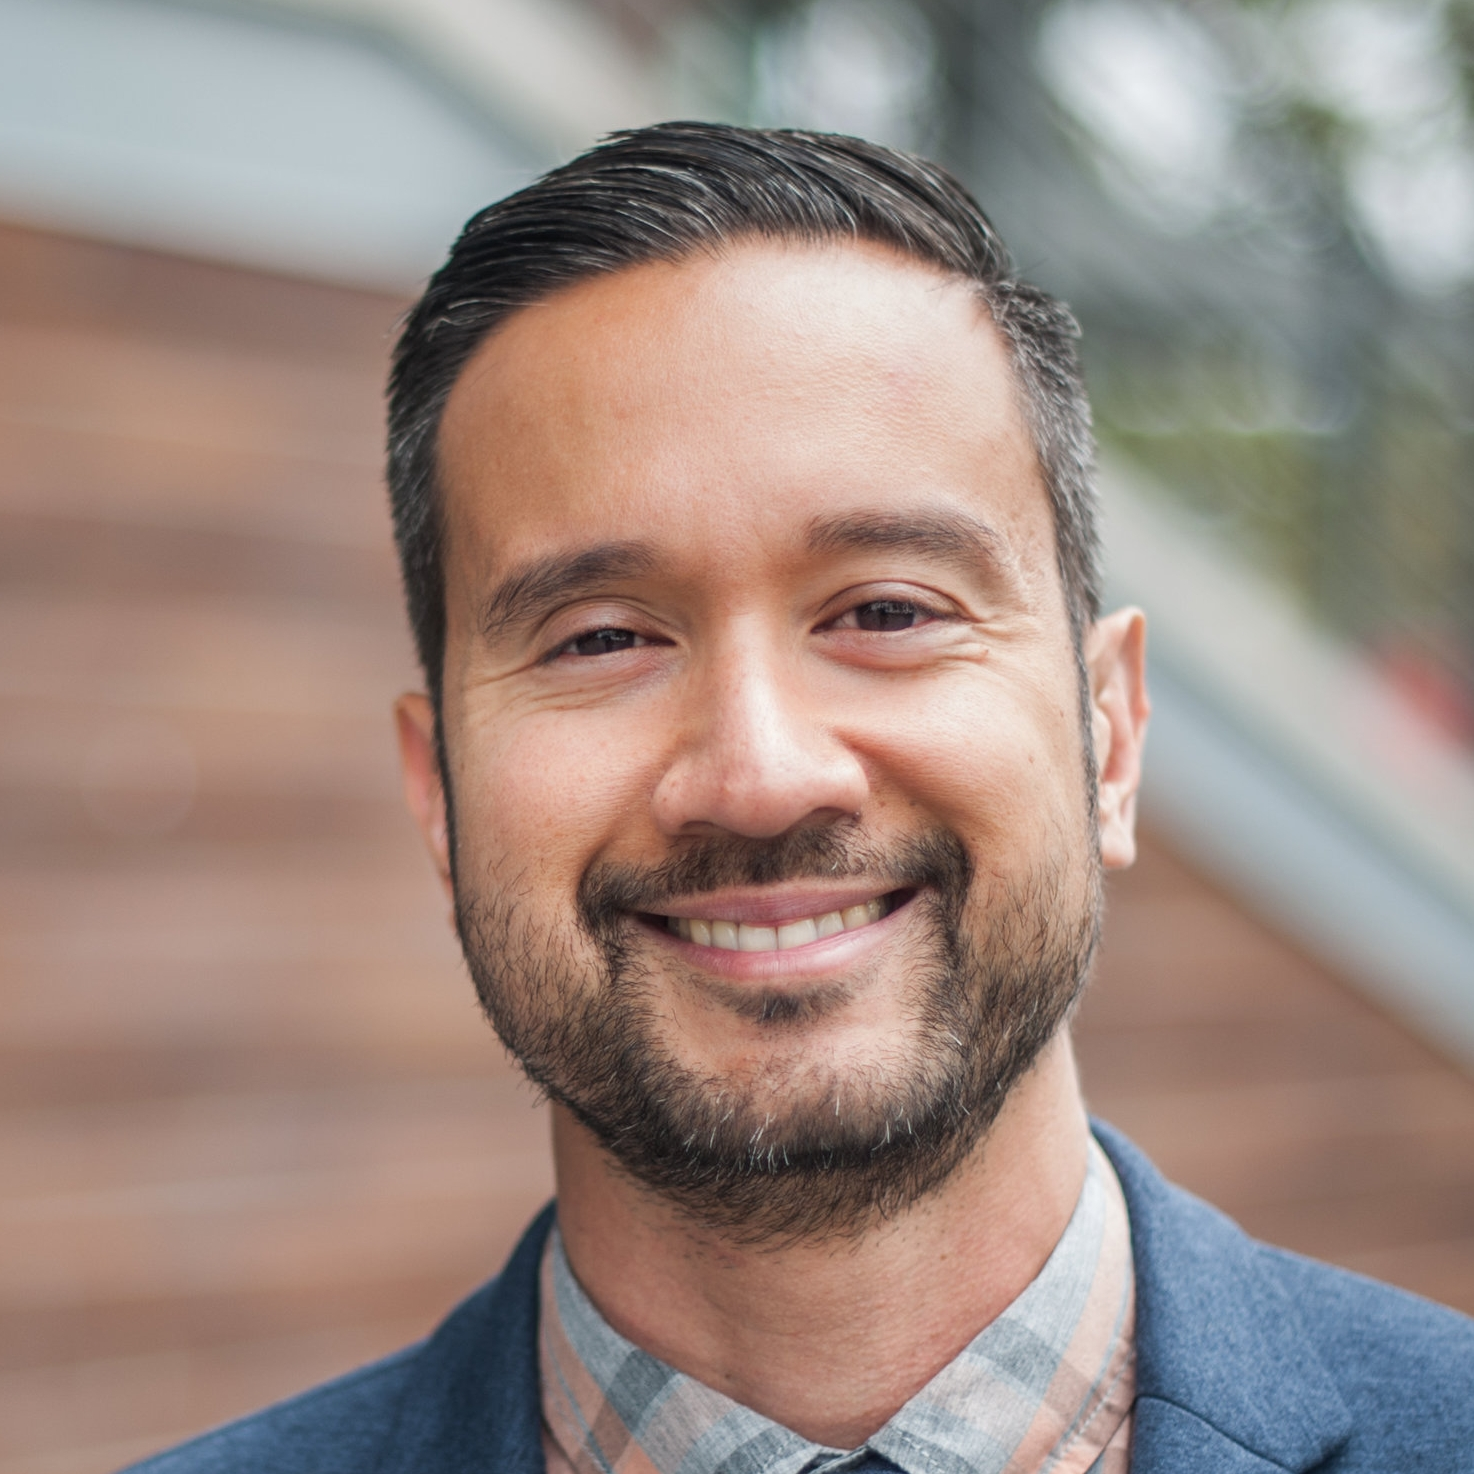 CHRISTIAN SIMAMORA   Lecturer + Fellow  Chris believes the highest form of work catalyzes personal growth while serving others. Chris has taught elementary school, coached college students and emerging social entrepreneurs, and led nonprofit programs focused on the empowerment of youth of color, leadership development and equity in the workforce.  His personal practices include meditation, exercise, reciting The Five Remembrances, and reflecting on the question from The Four Rivers.  Chris is in his flow state when he is creating, coaching, practicing Brazilian Jiu-jitsu, having lingering dinner and conversation with close friends, and taking in the sound of his son's laughter.